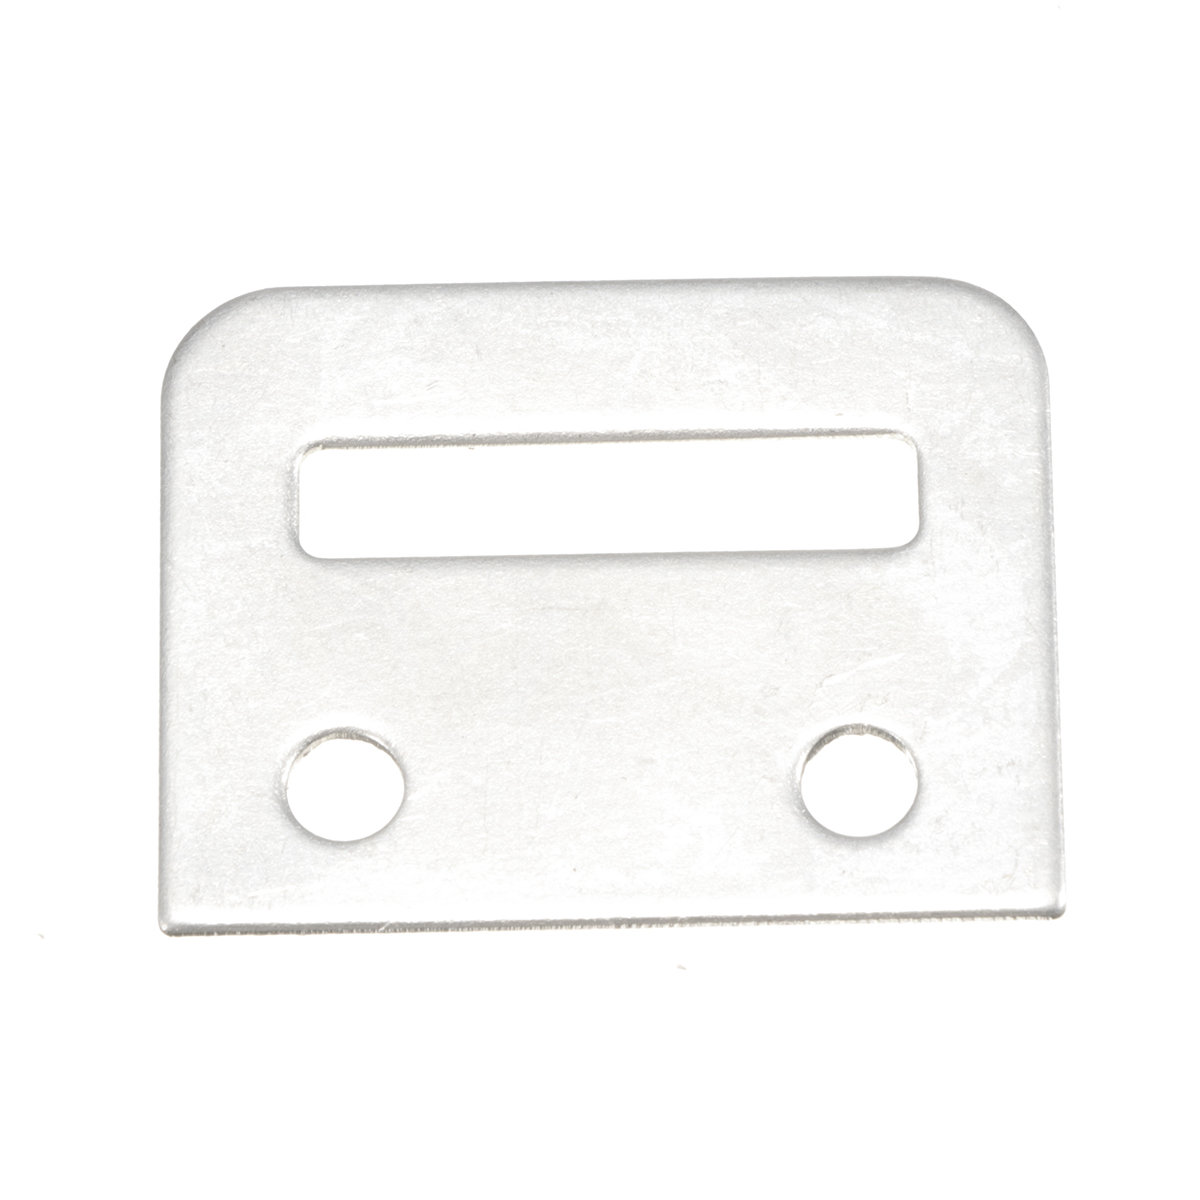 Other Hardware Accessories